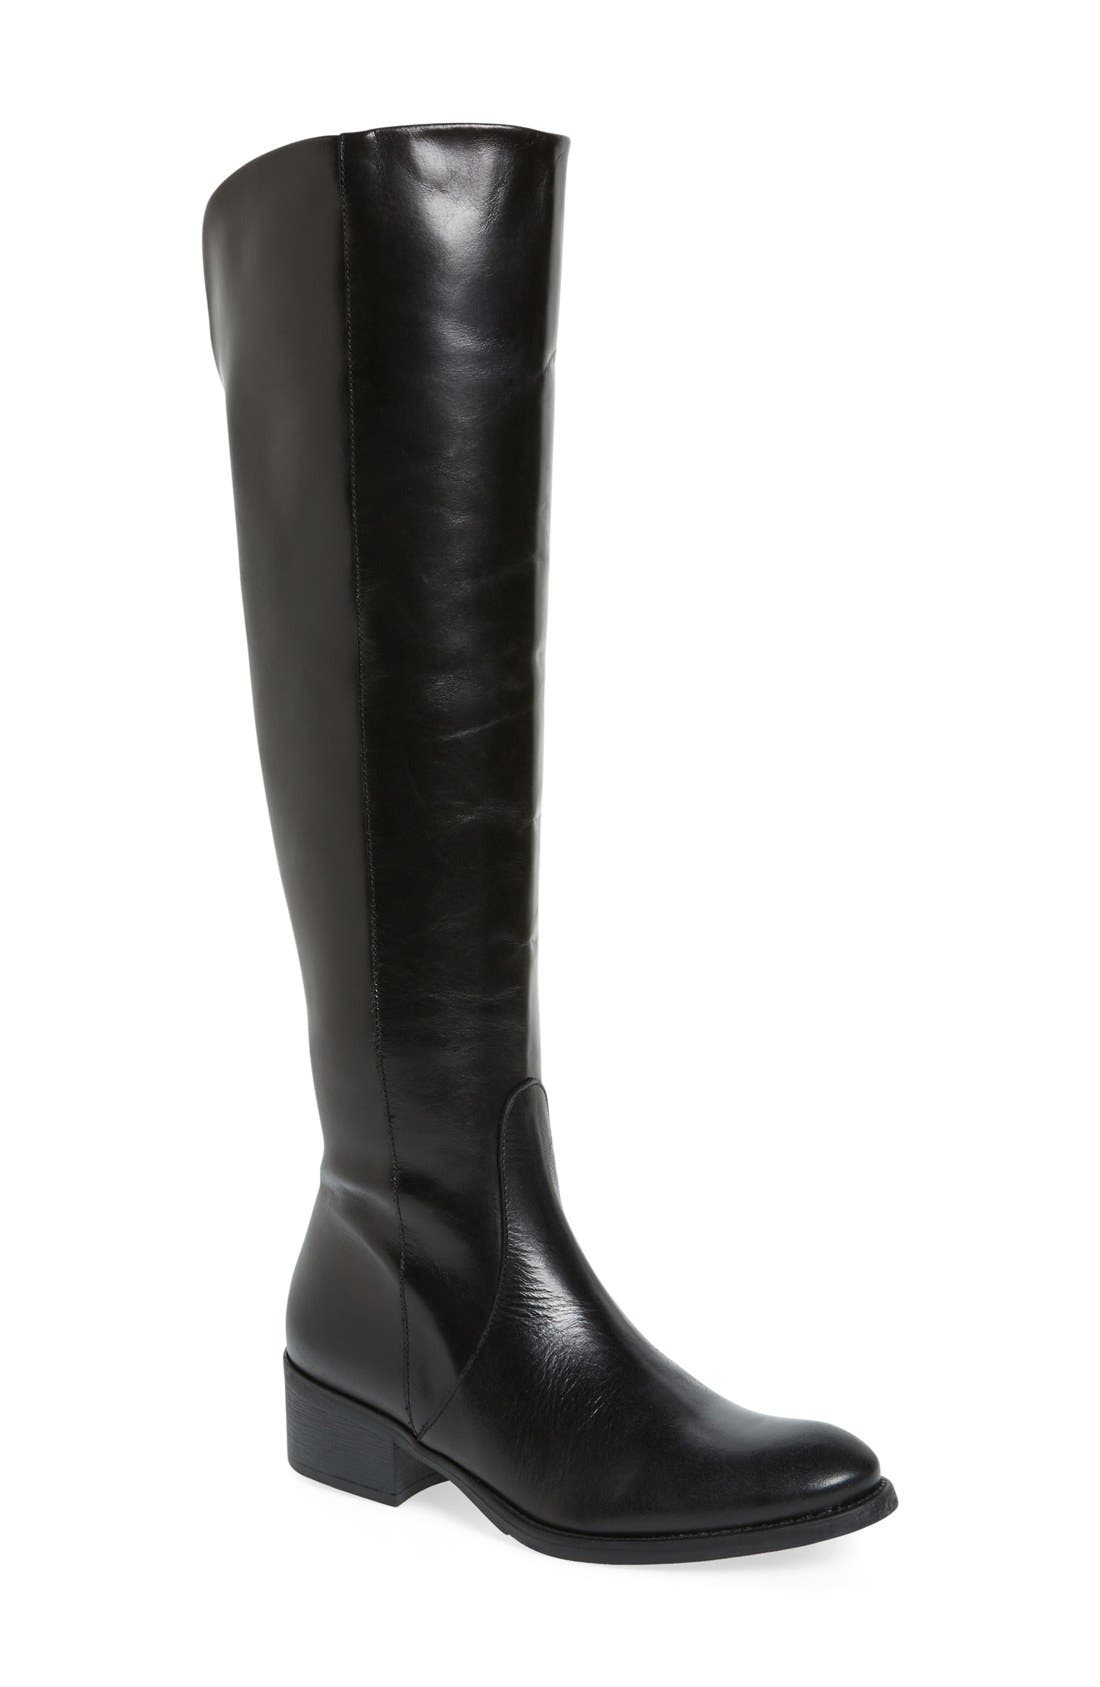 'Tallin' Over-The-Knee Riding Boot,                             Main thumbnail 1, color,                             BLACK LEATHER